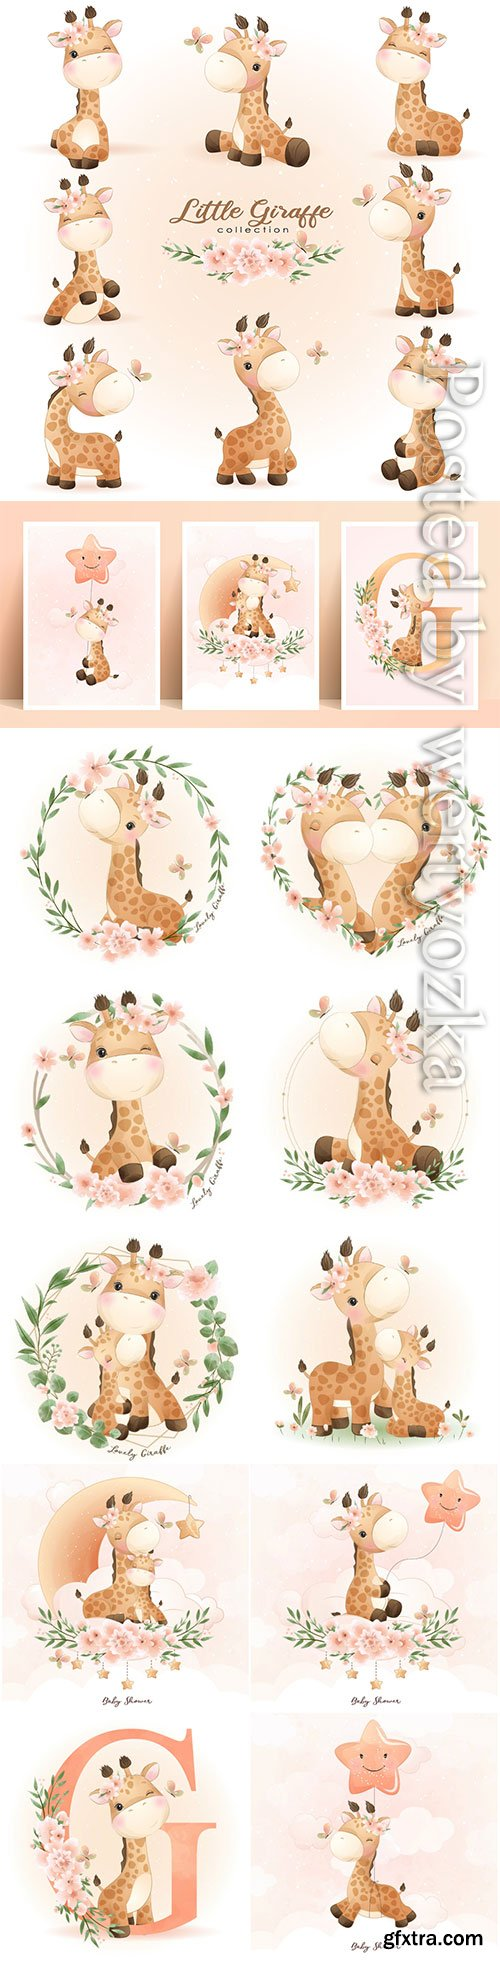 Cute doodle giraffe poses with floral illustration premium vector